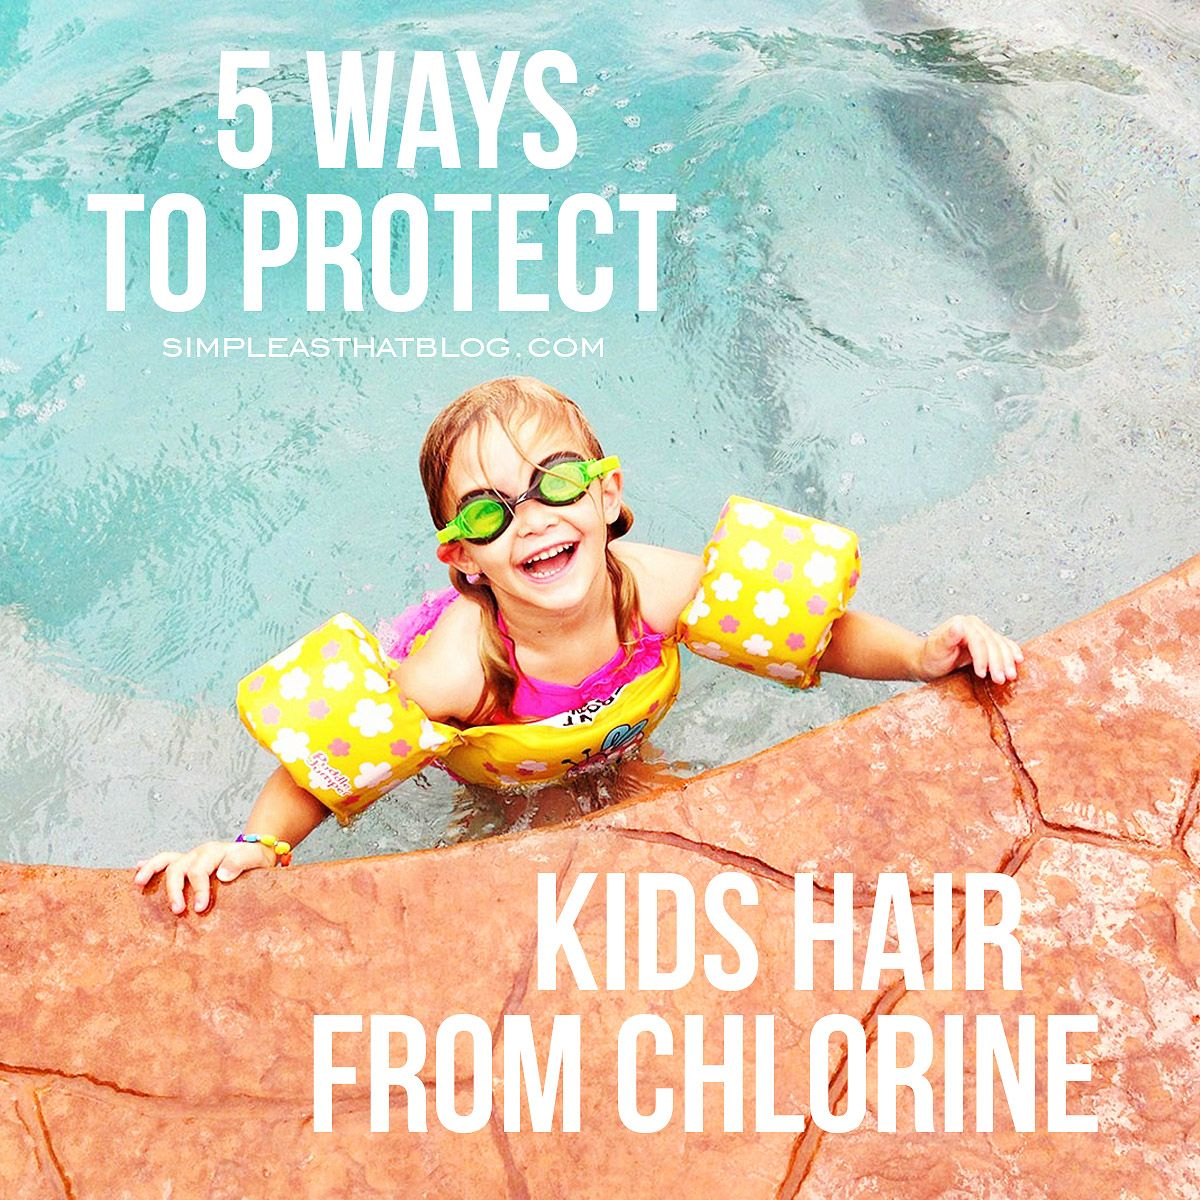 5 Ways to Protect Kids Hair from Chlorine #kidhair